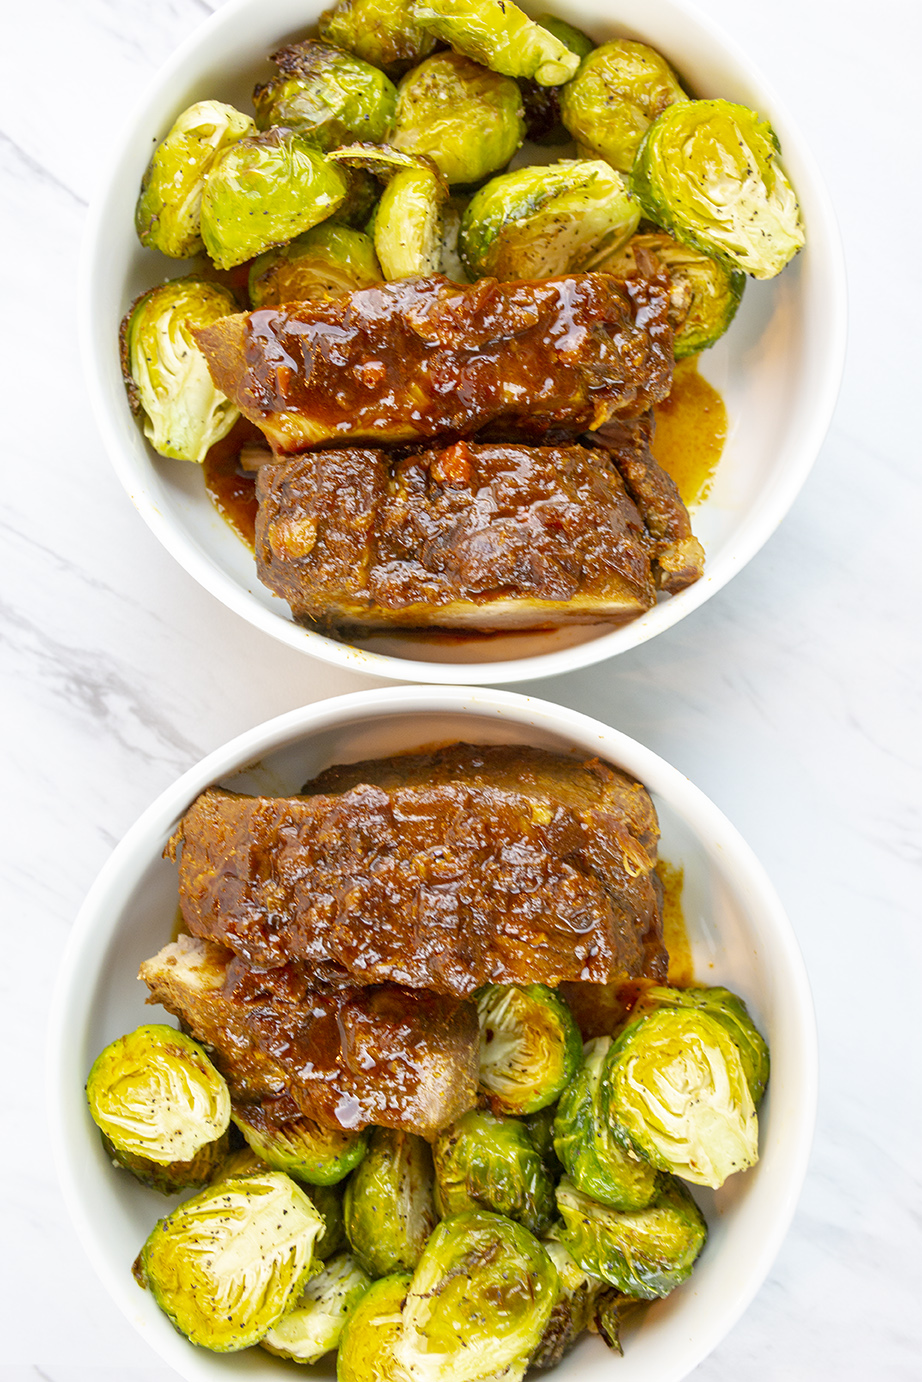 Back ribs cooked with Asian spices and served with roasted Brussels sprouts served in white bowls